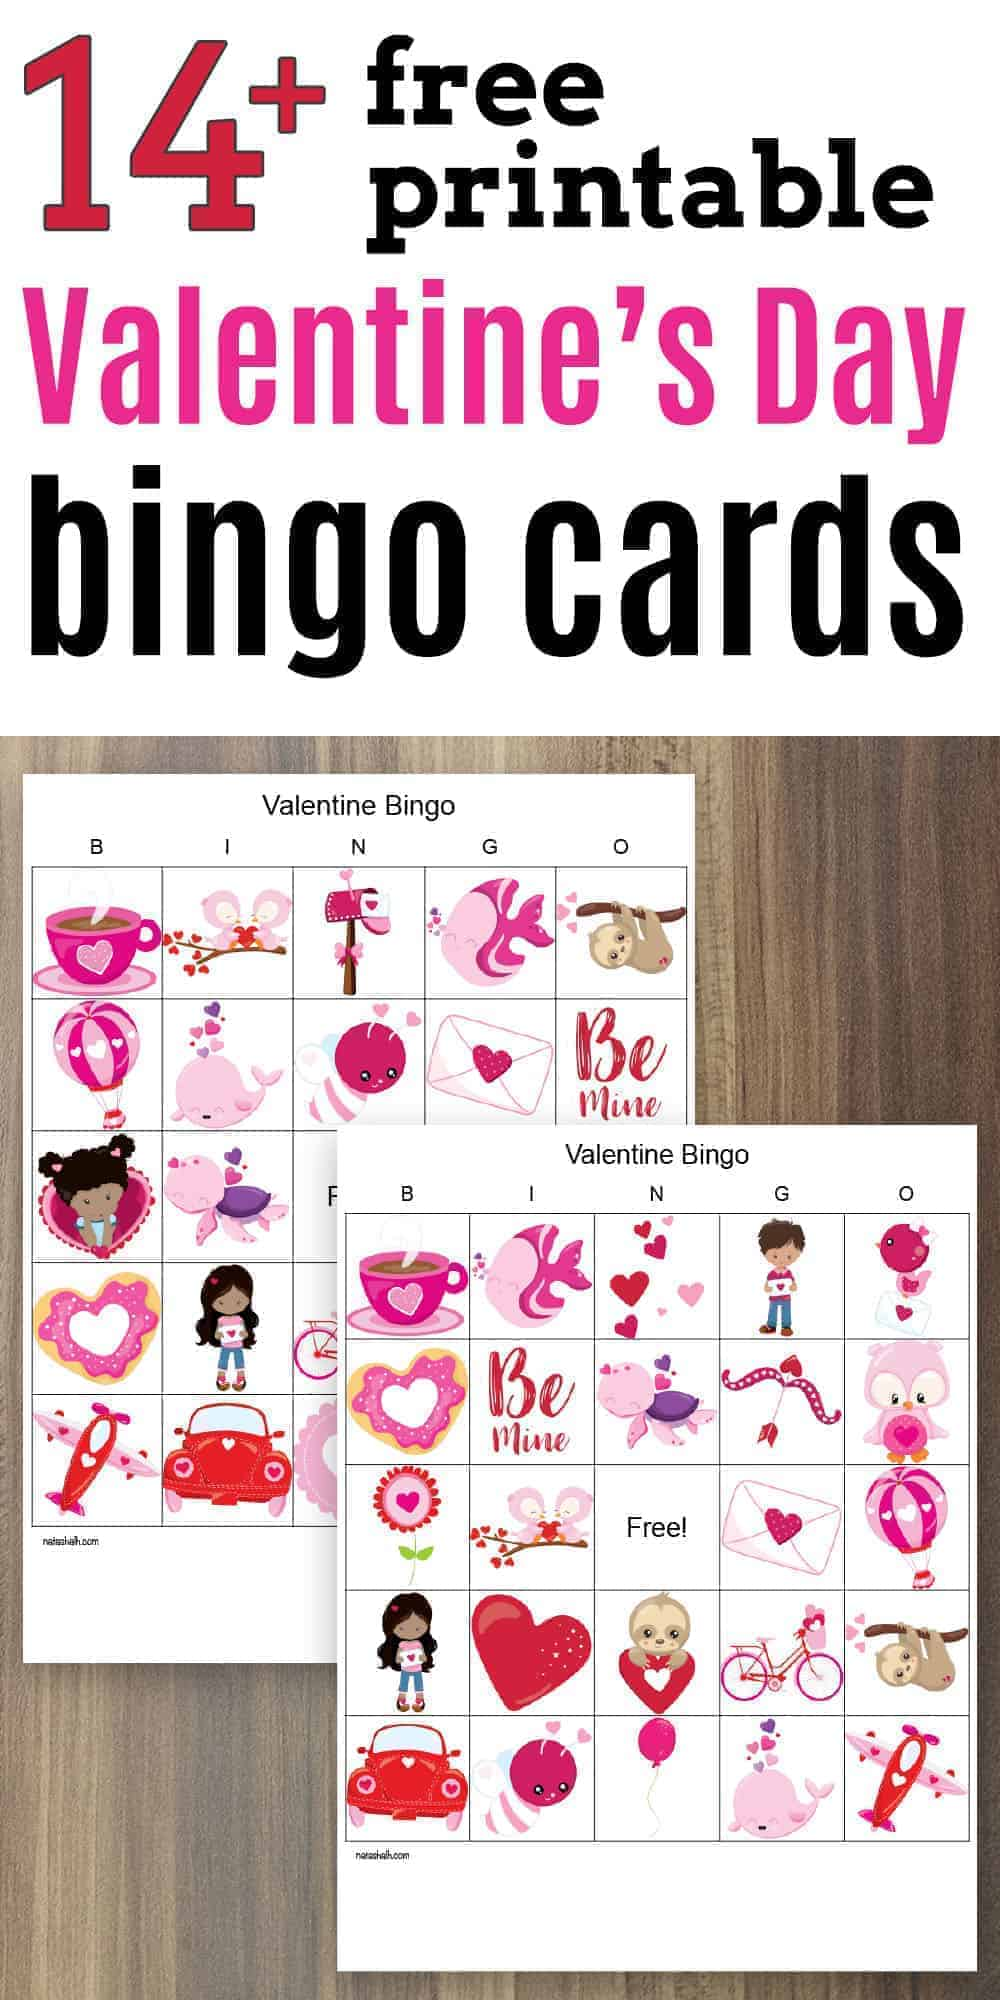 It's just a photo of Printable Valentine Bingo Cards throughout love